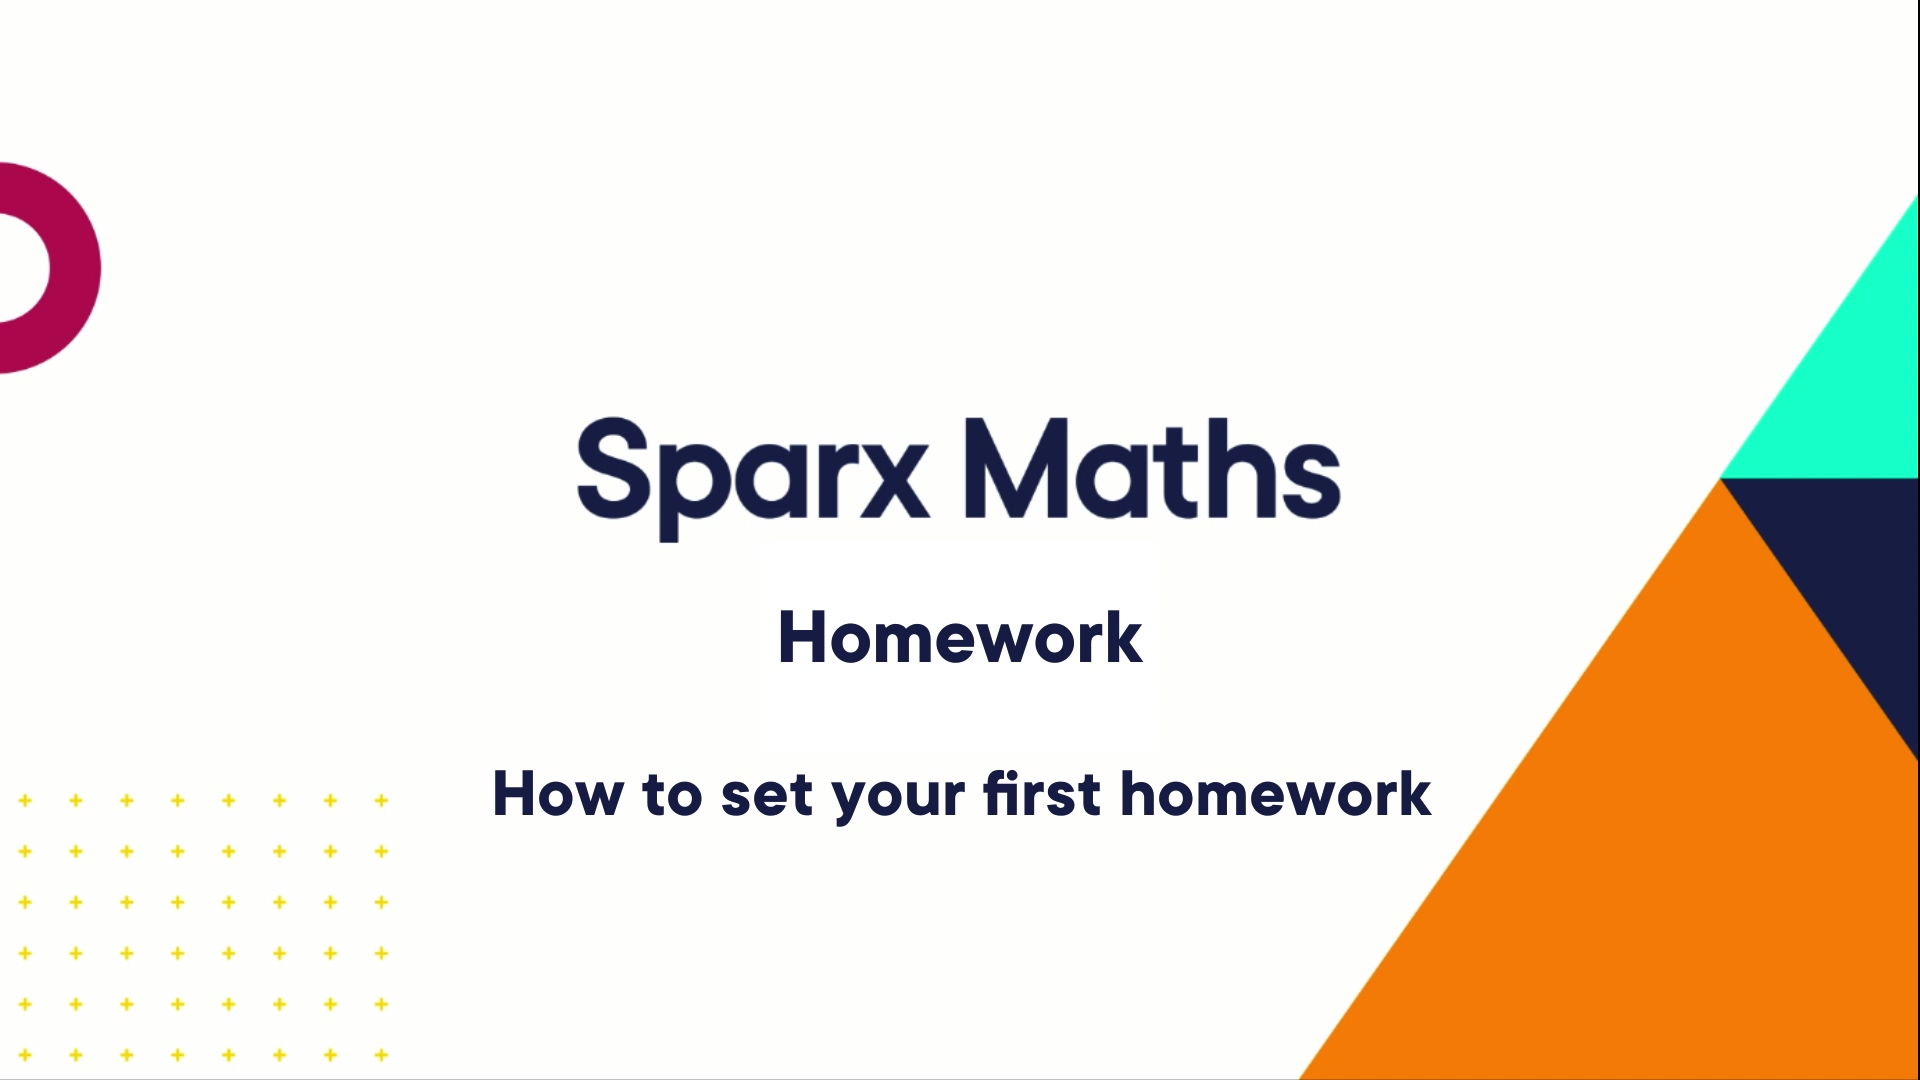 CSV - How to set your first homework